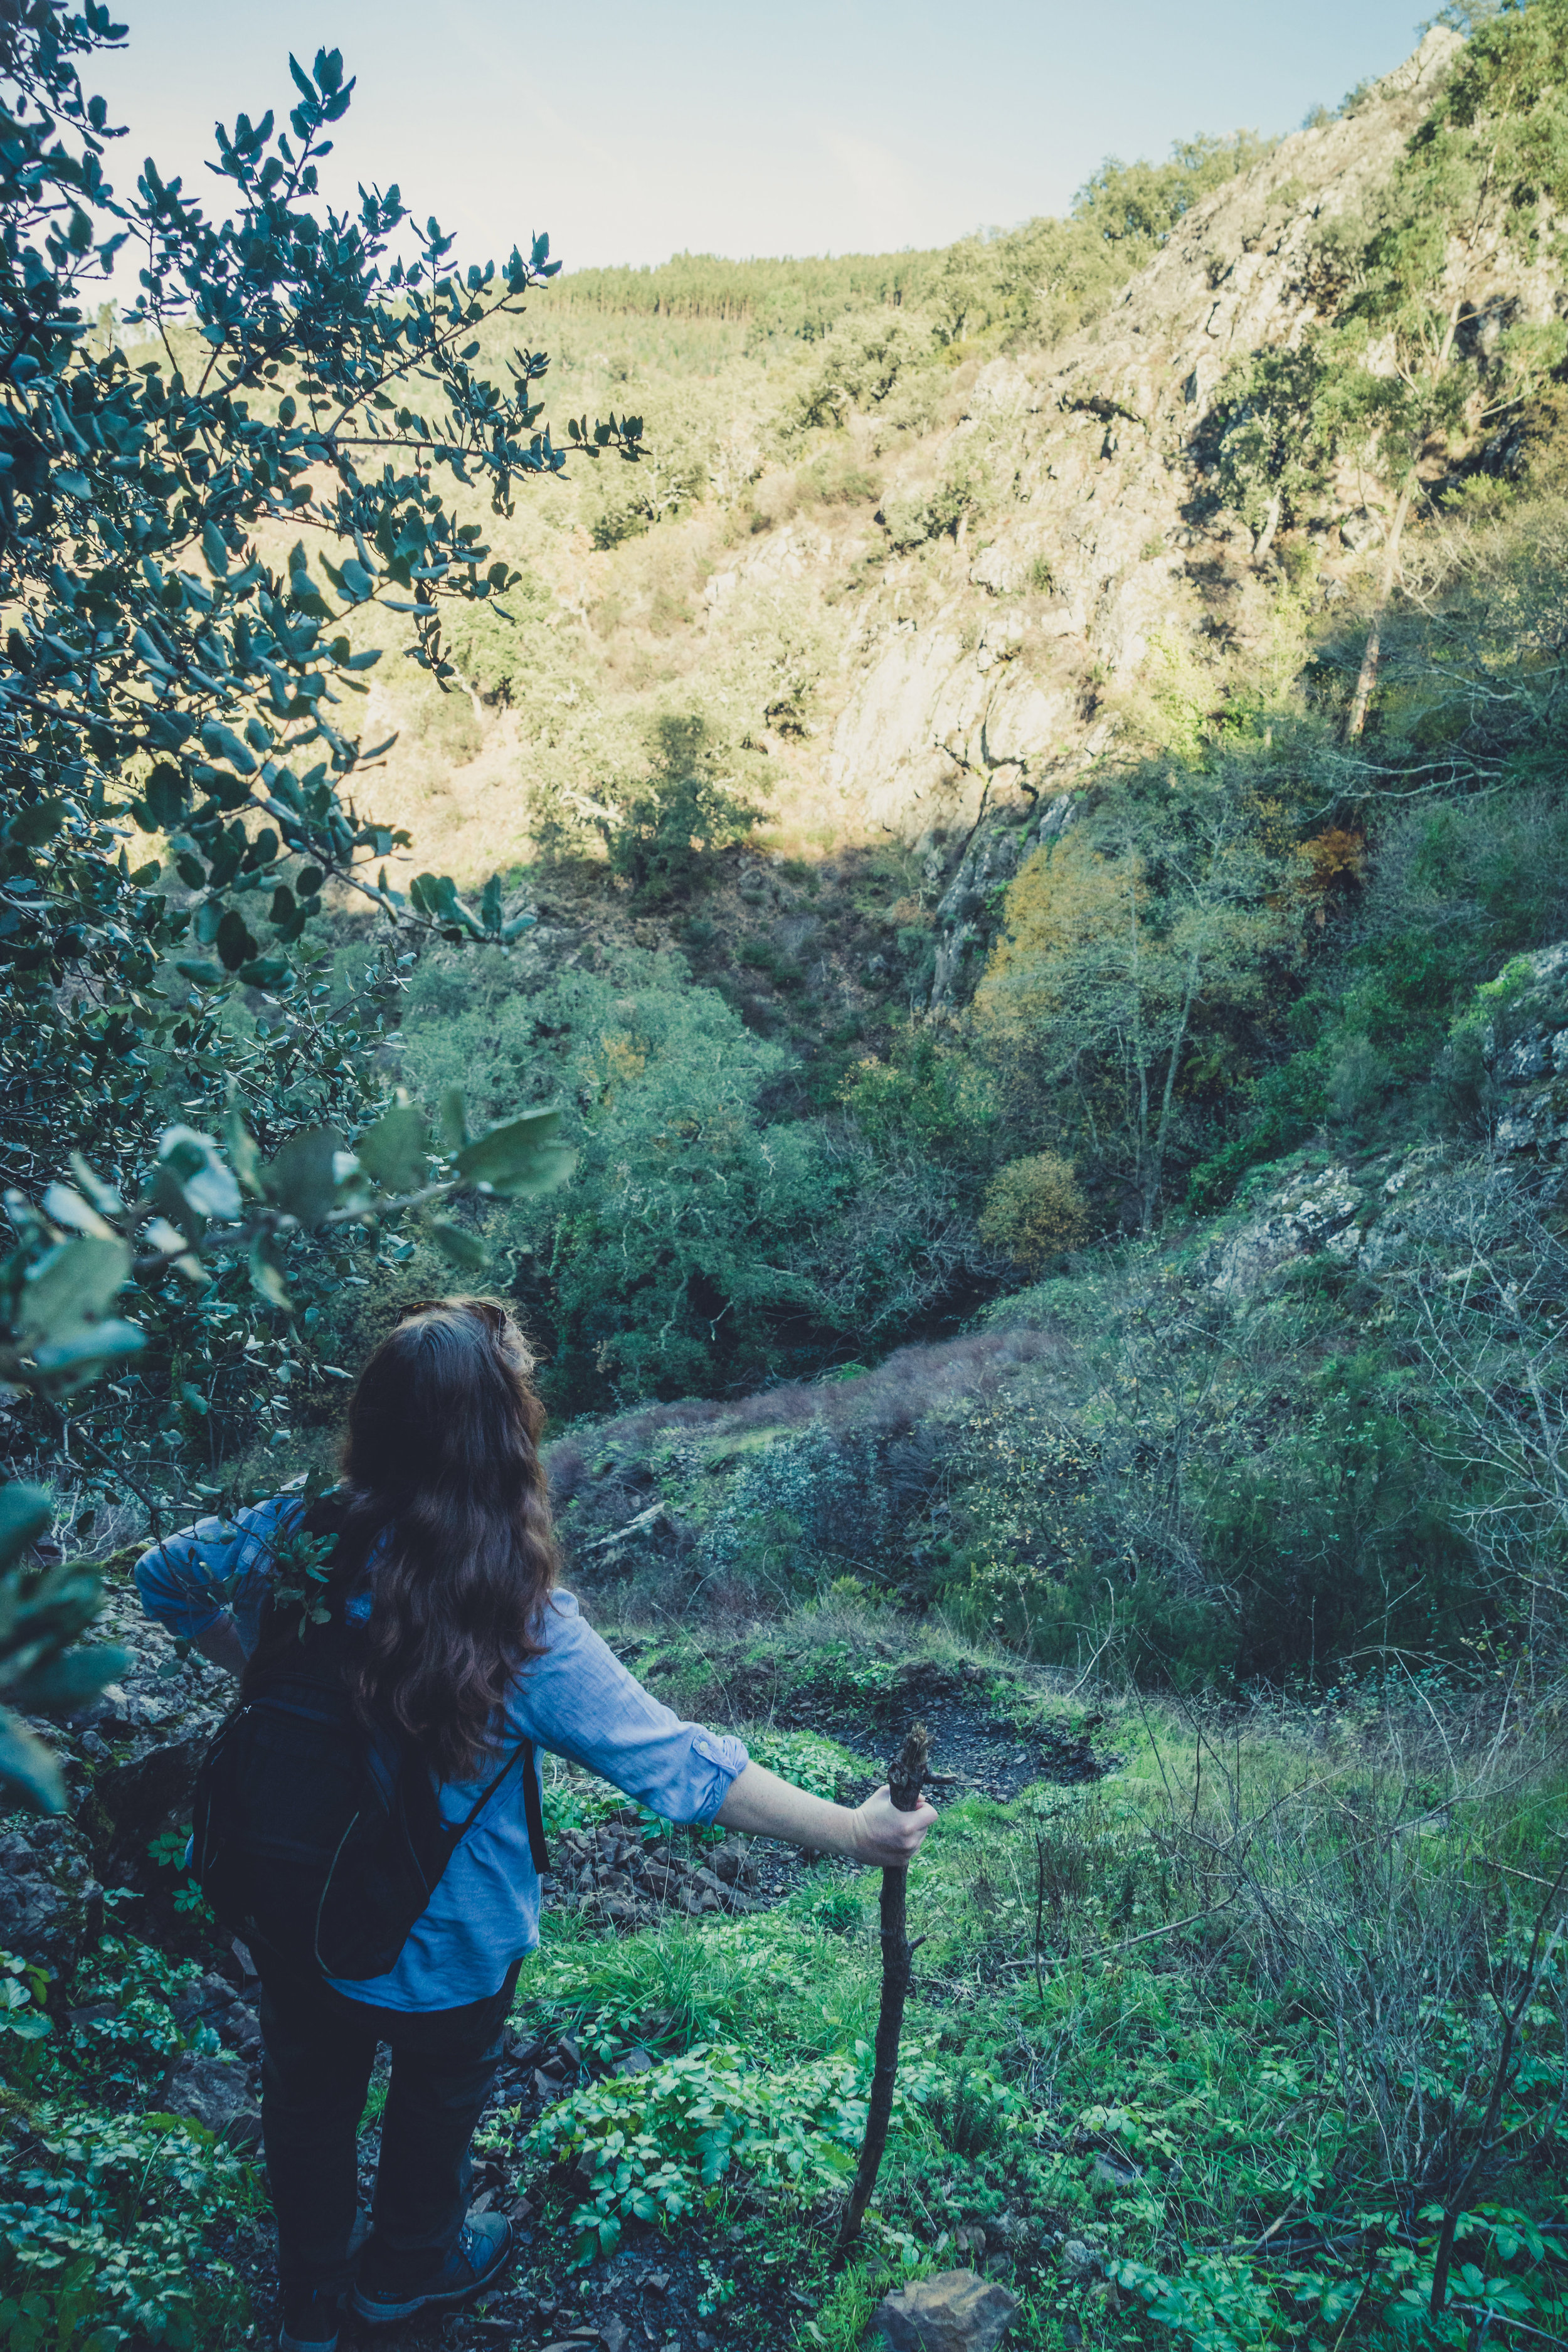 barbelote waterfall monchique portugal. hiking trail. walking trail. evil trees. lots of trees. cork trees. cant find the waterfall.jpg